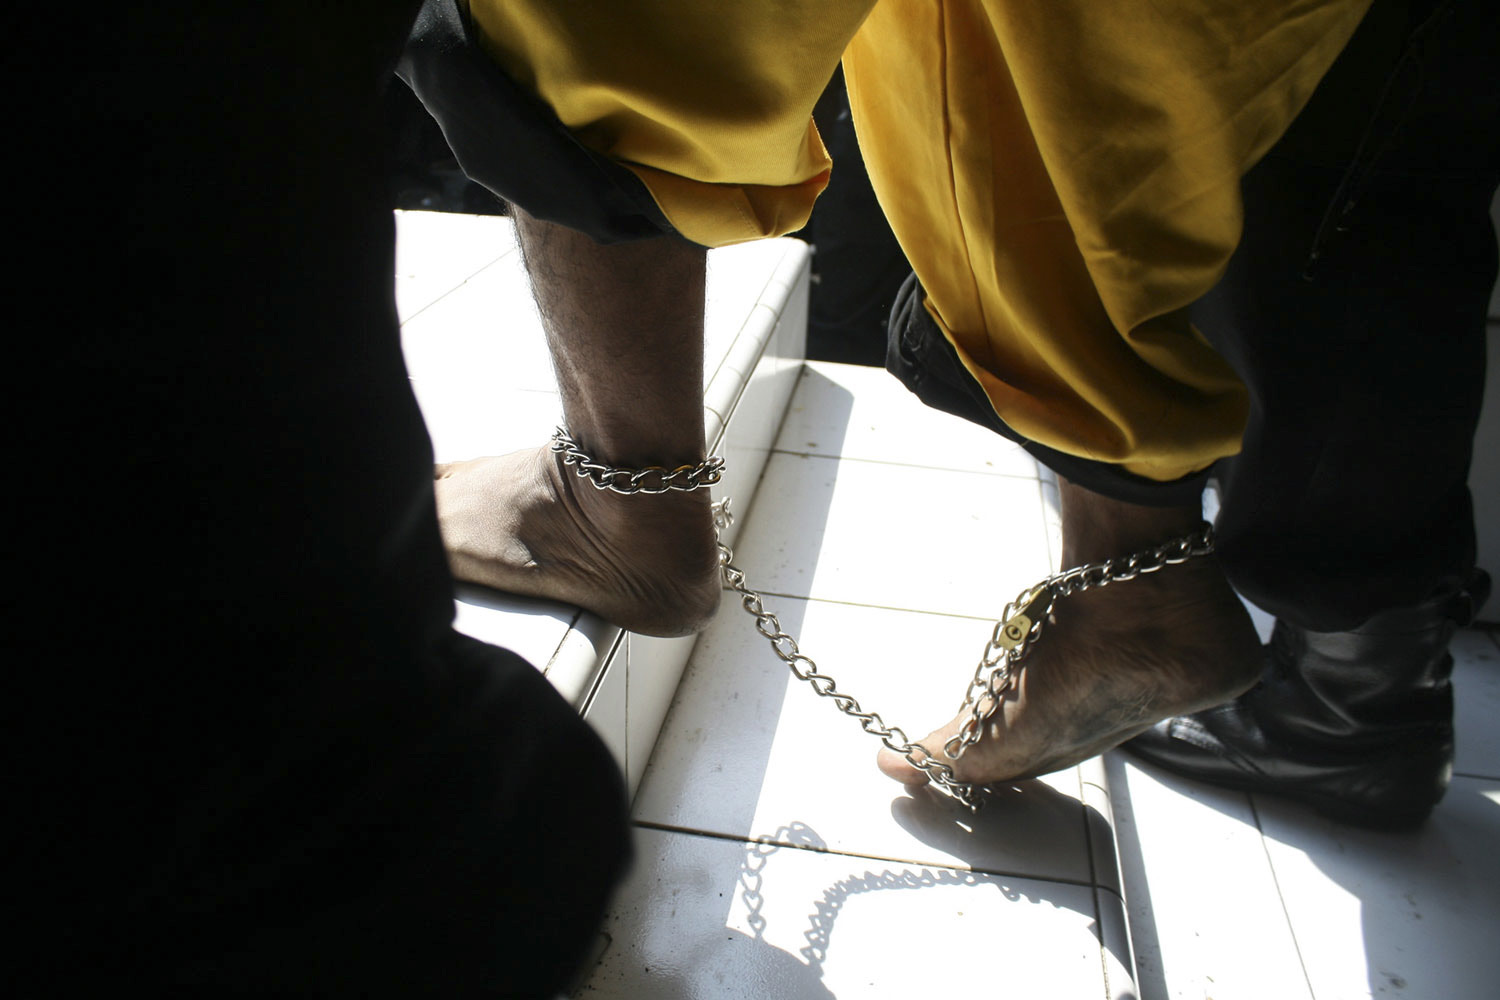 May 19, 2011. A man suspected of having ties to a suicide bomber walks at a police office in Cirebon, Indonesia.